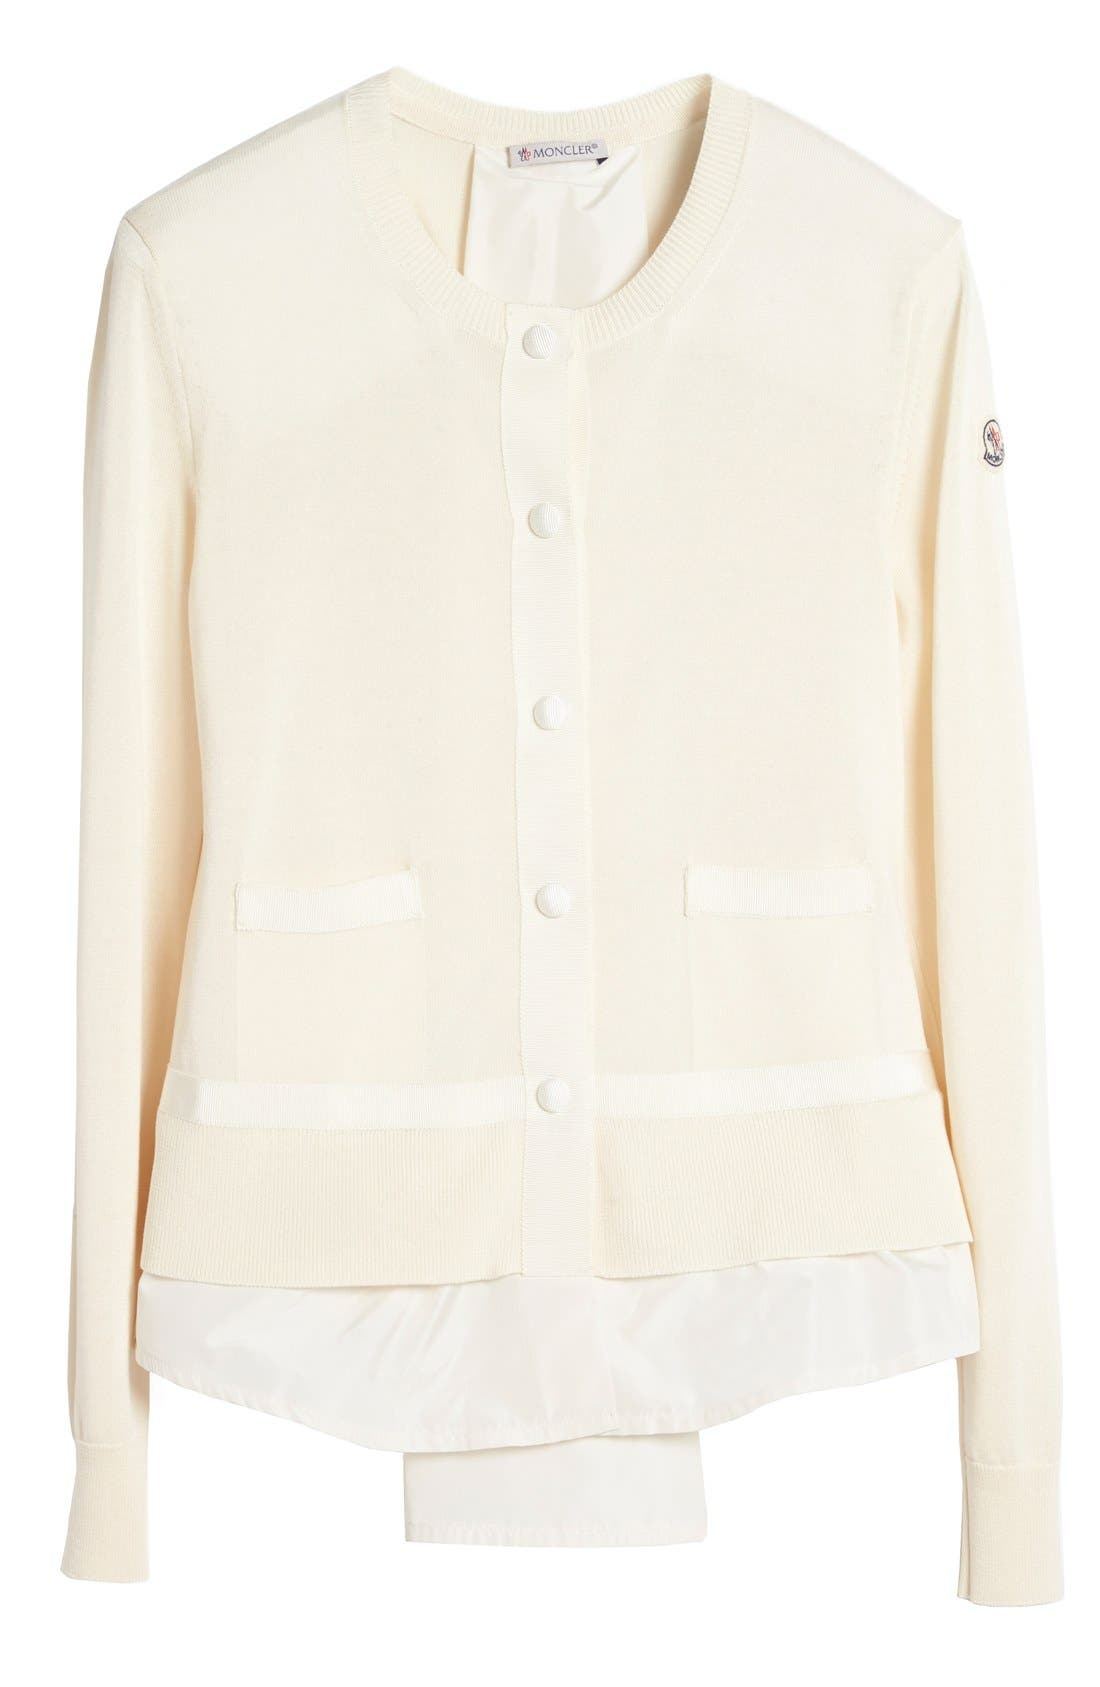 'maglia' Tricot Button Cardigan by Moncler